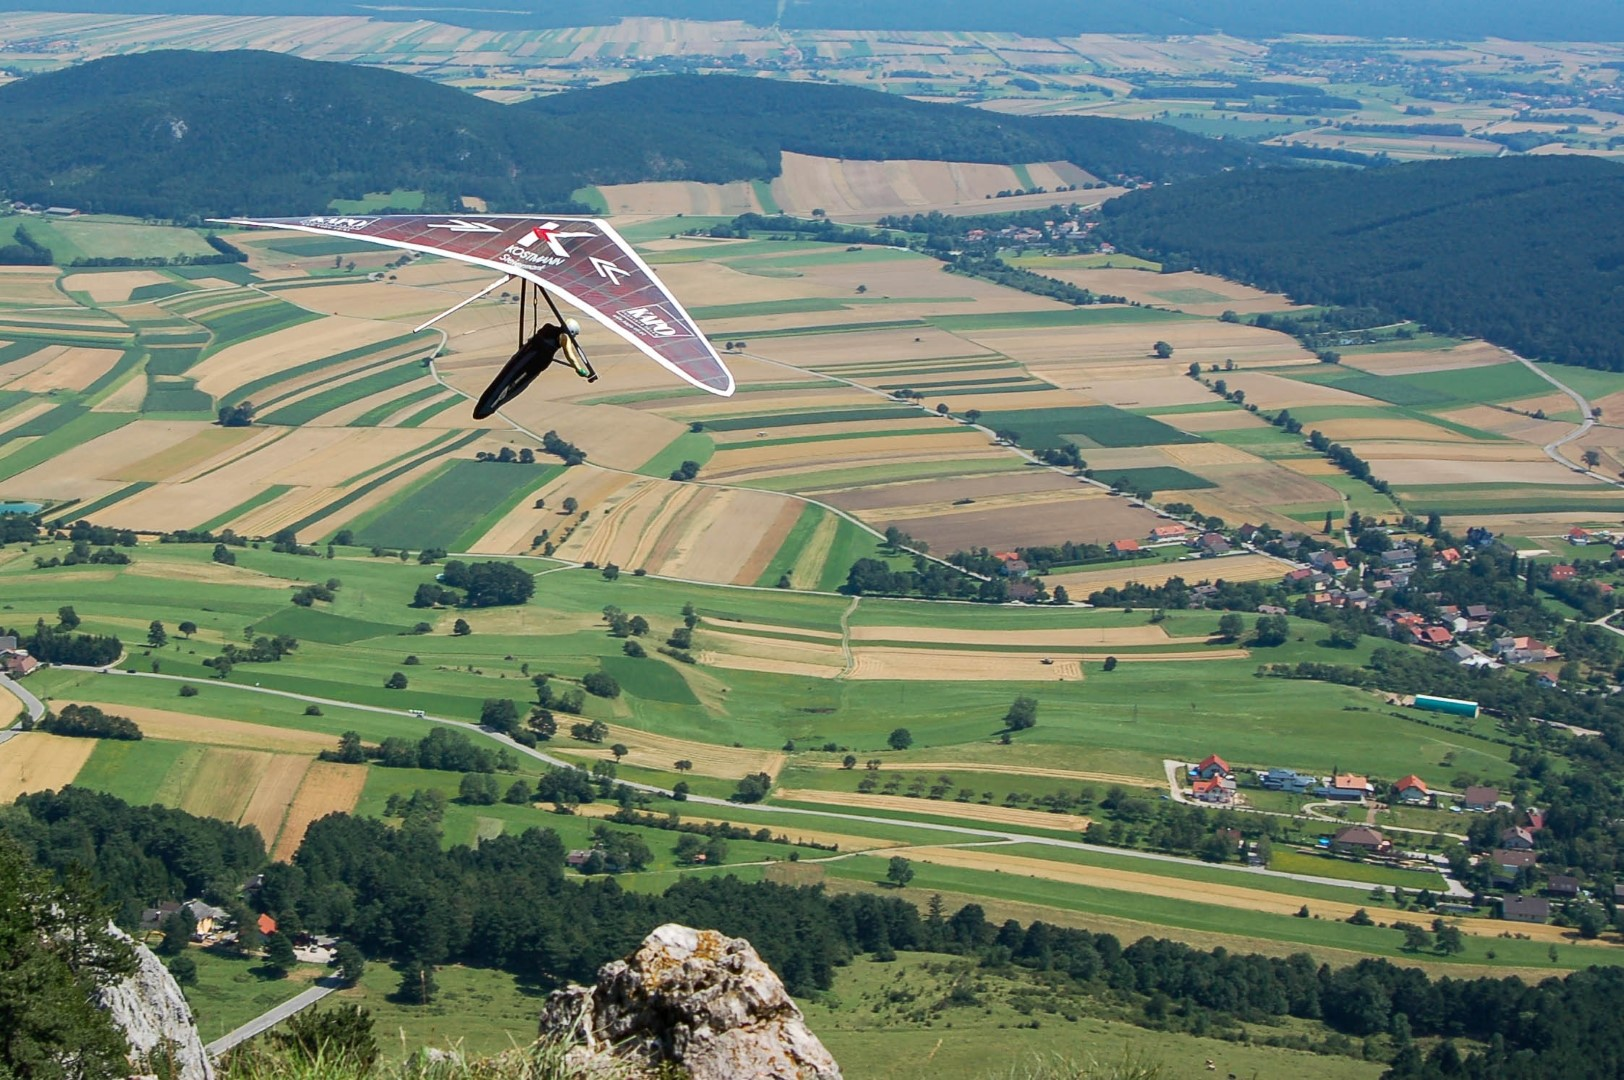 How it is done and how to operate the hang glider